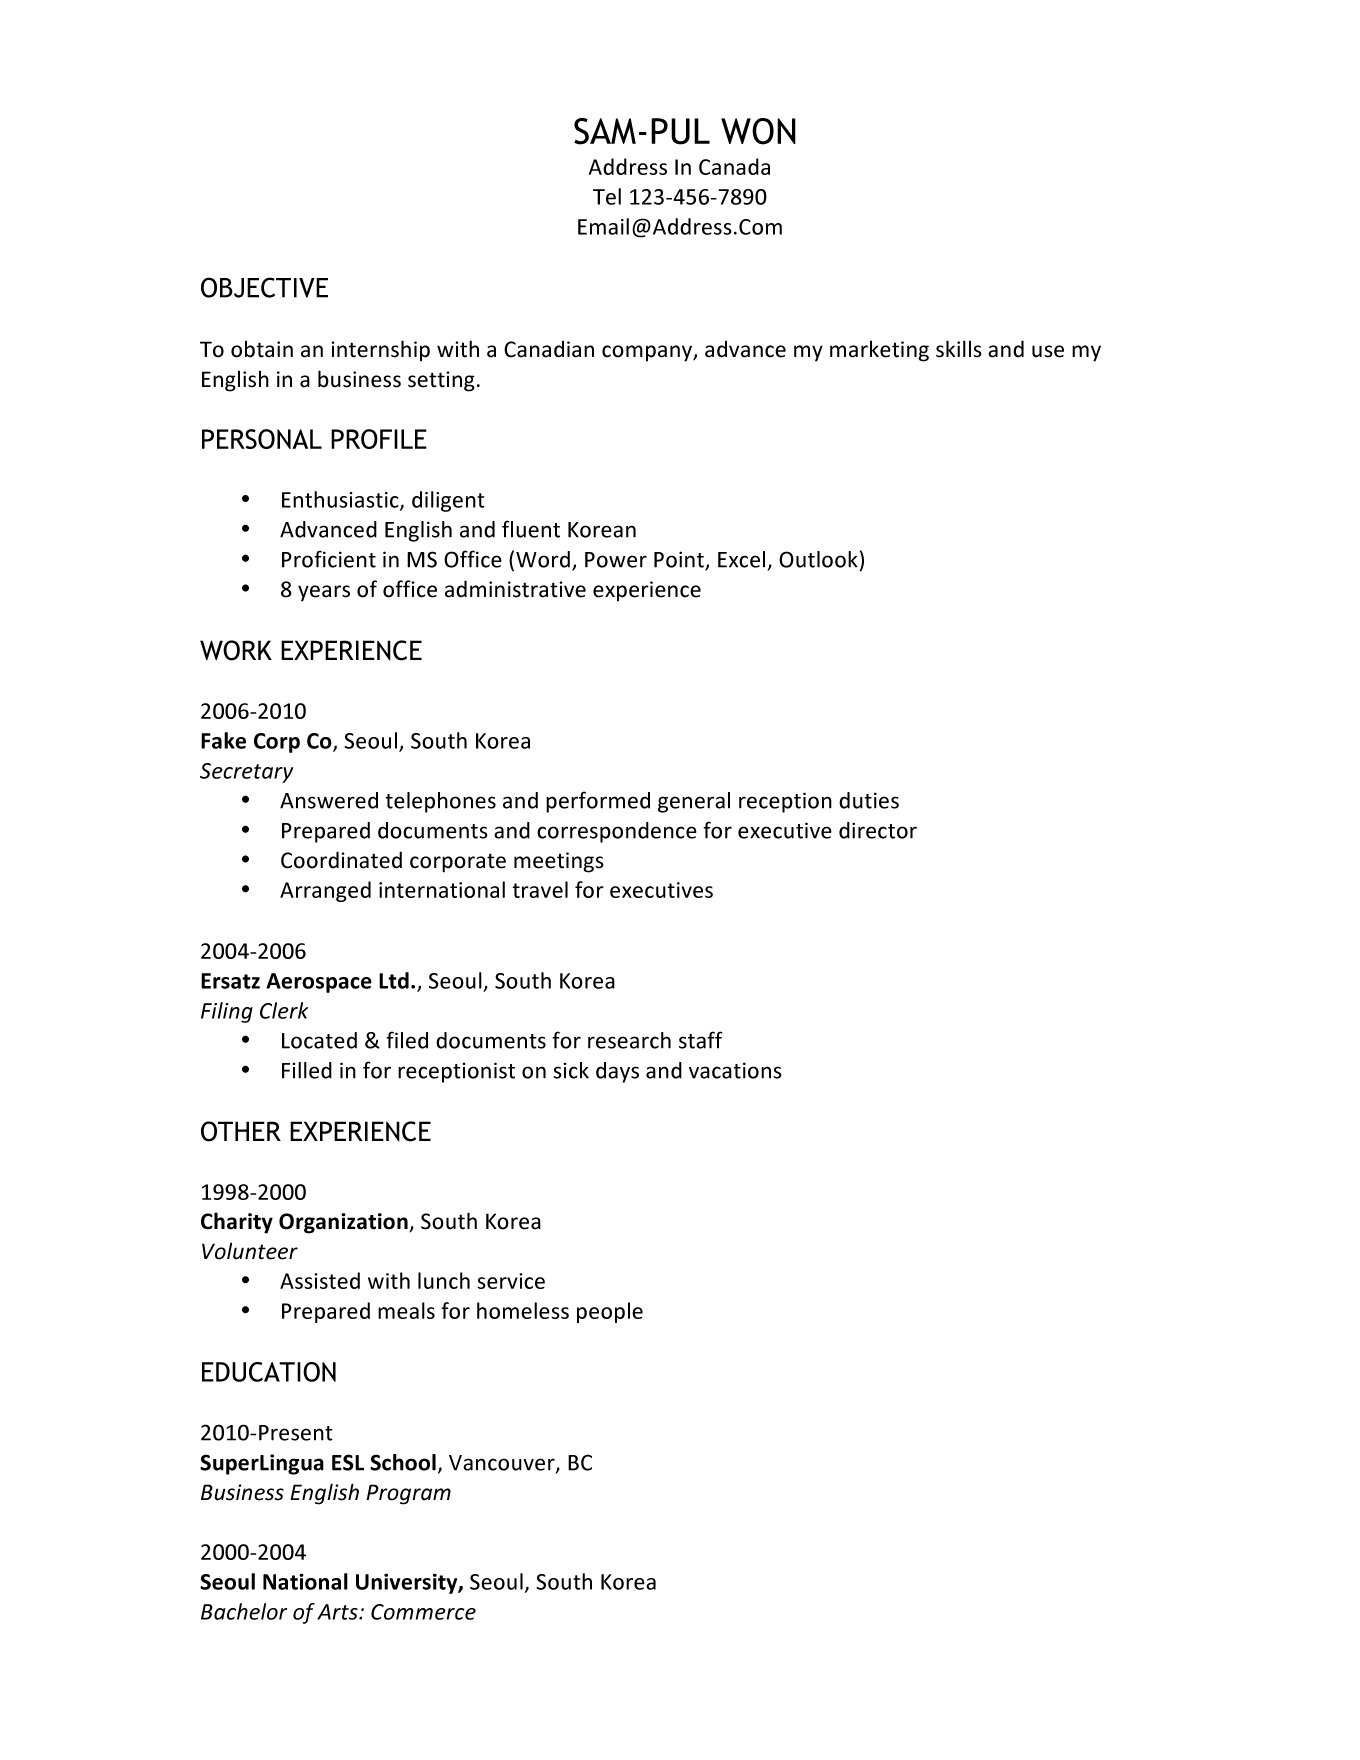 How To Write A Resume For Internship Criminal Internship Justice Resume  Intern Resume Example Resume Examples